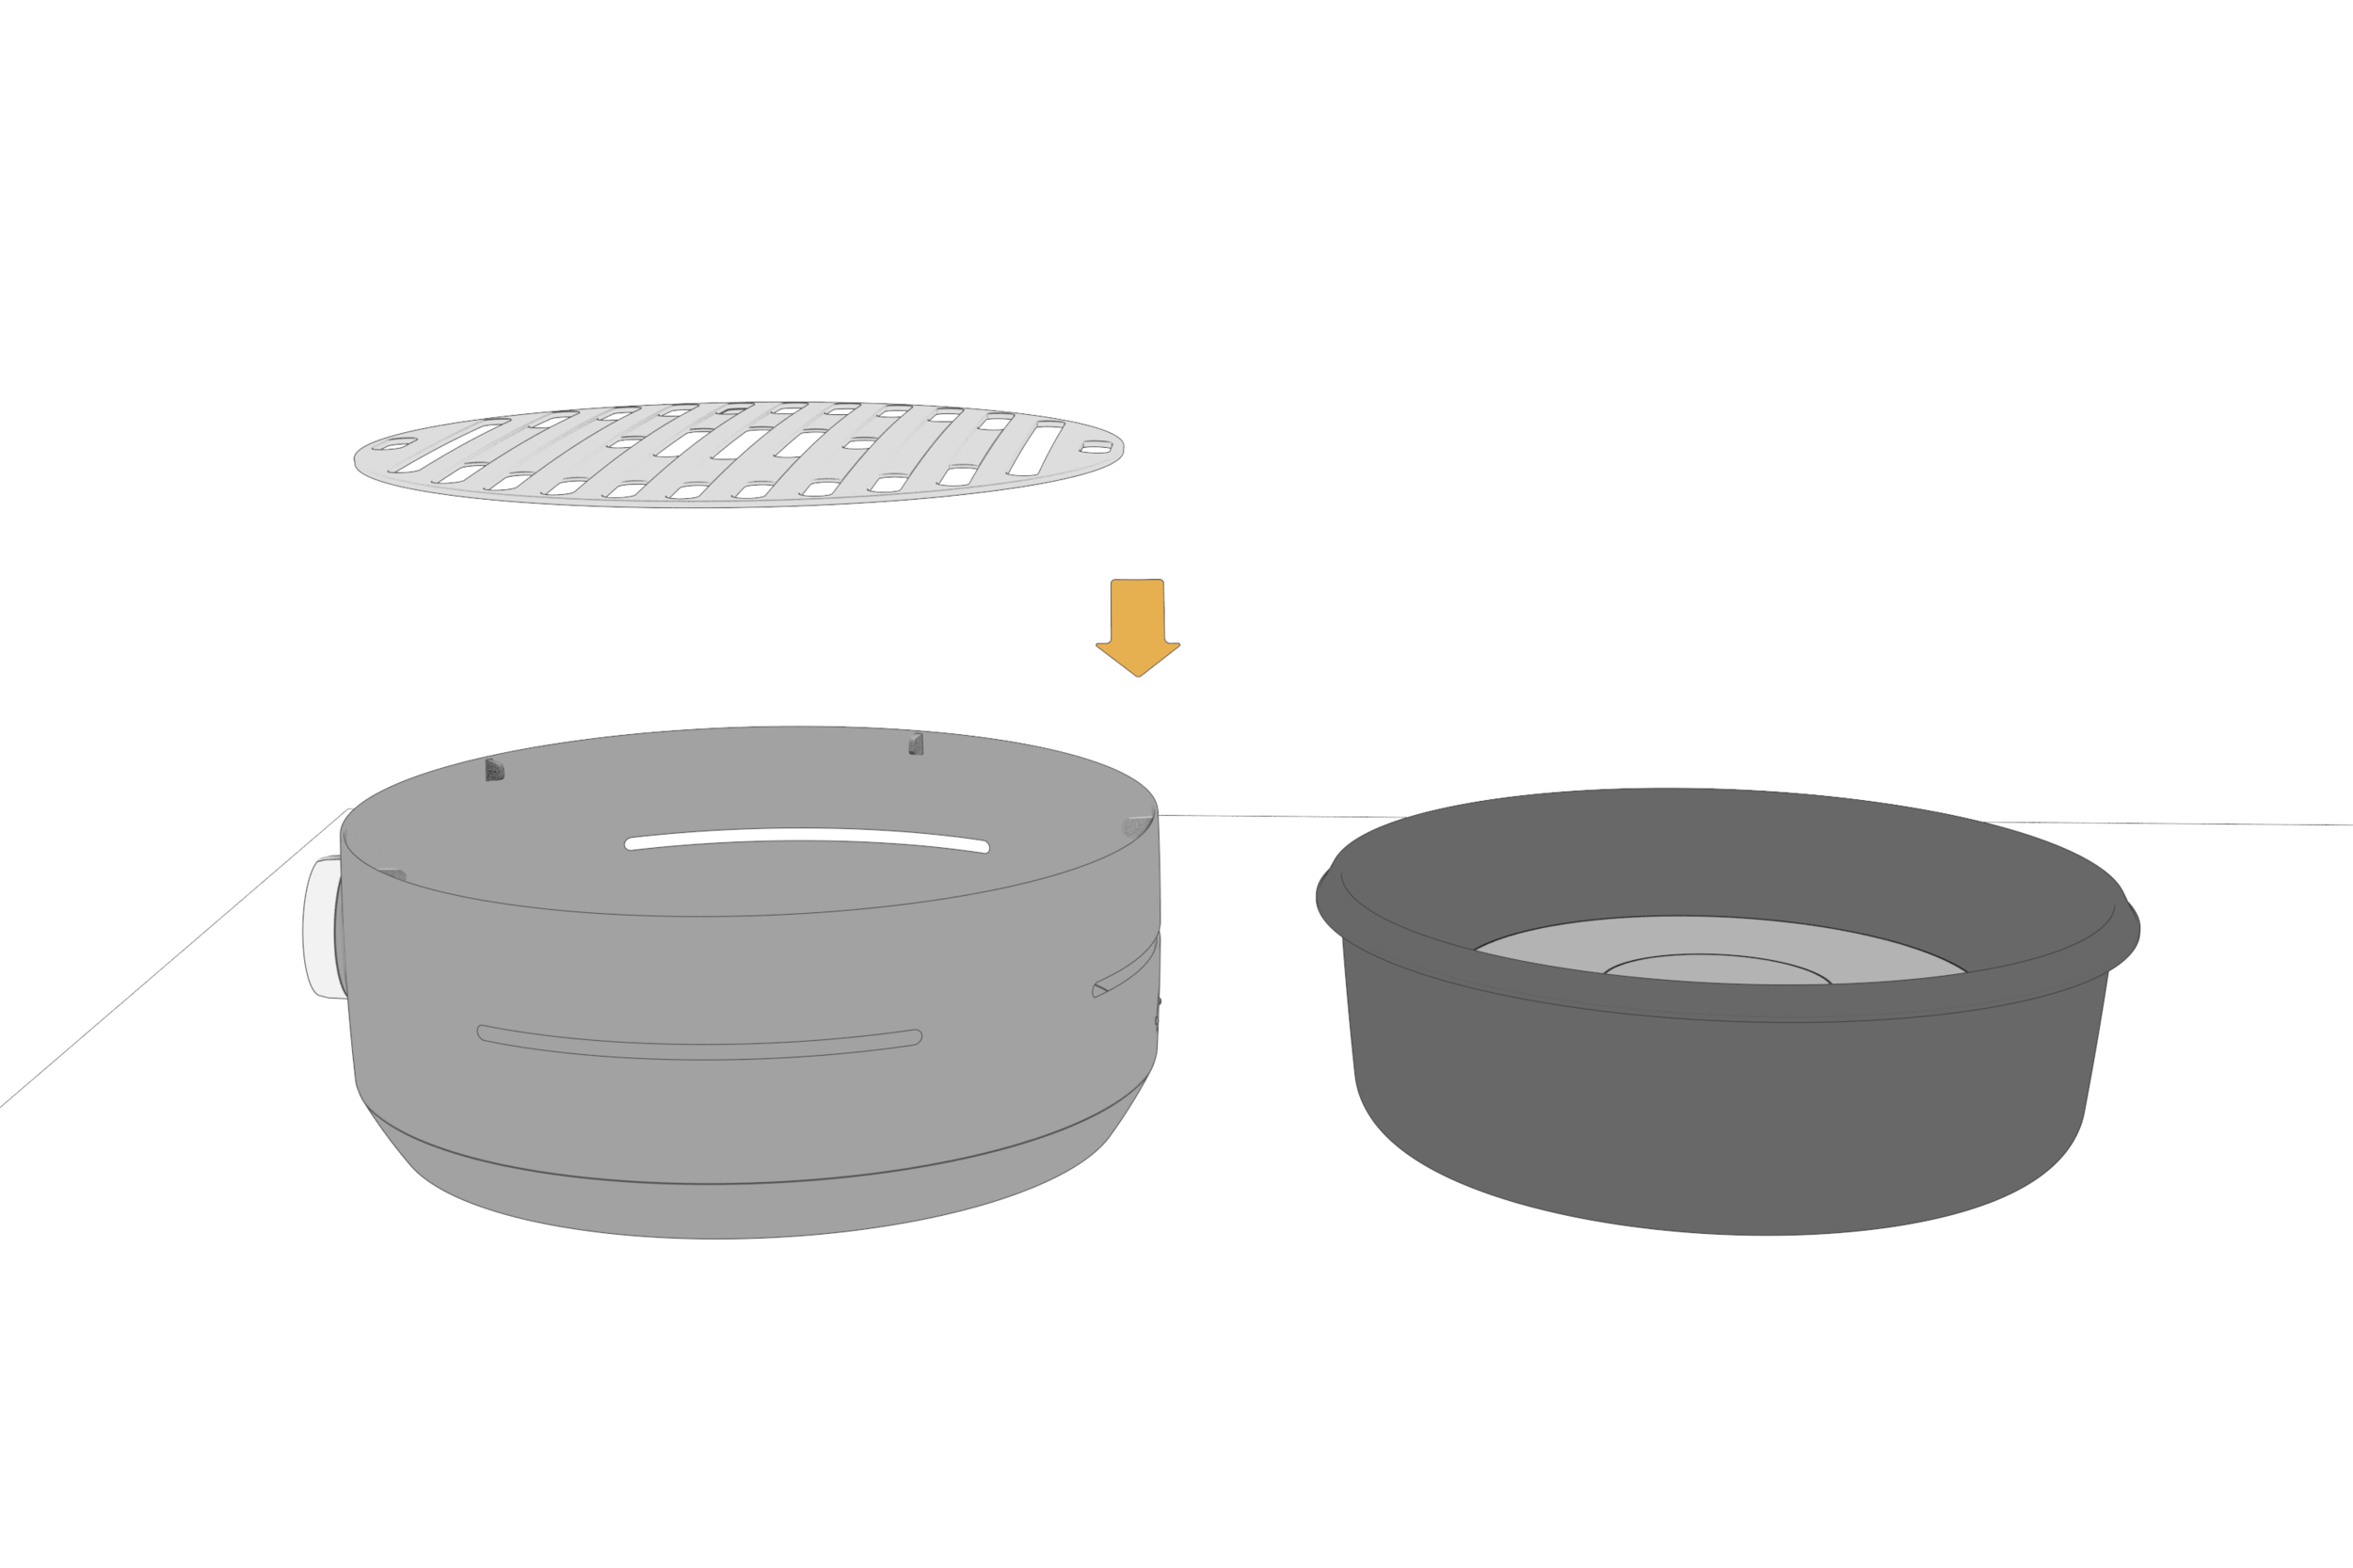 Charcoal Grill _ use cycle.12.png